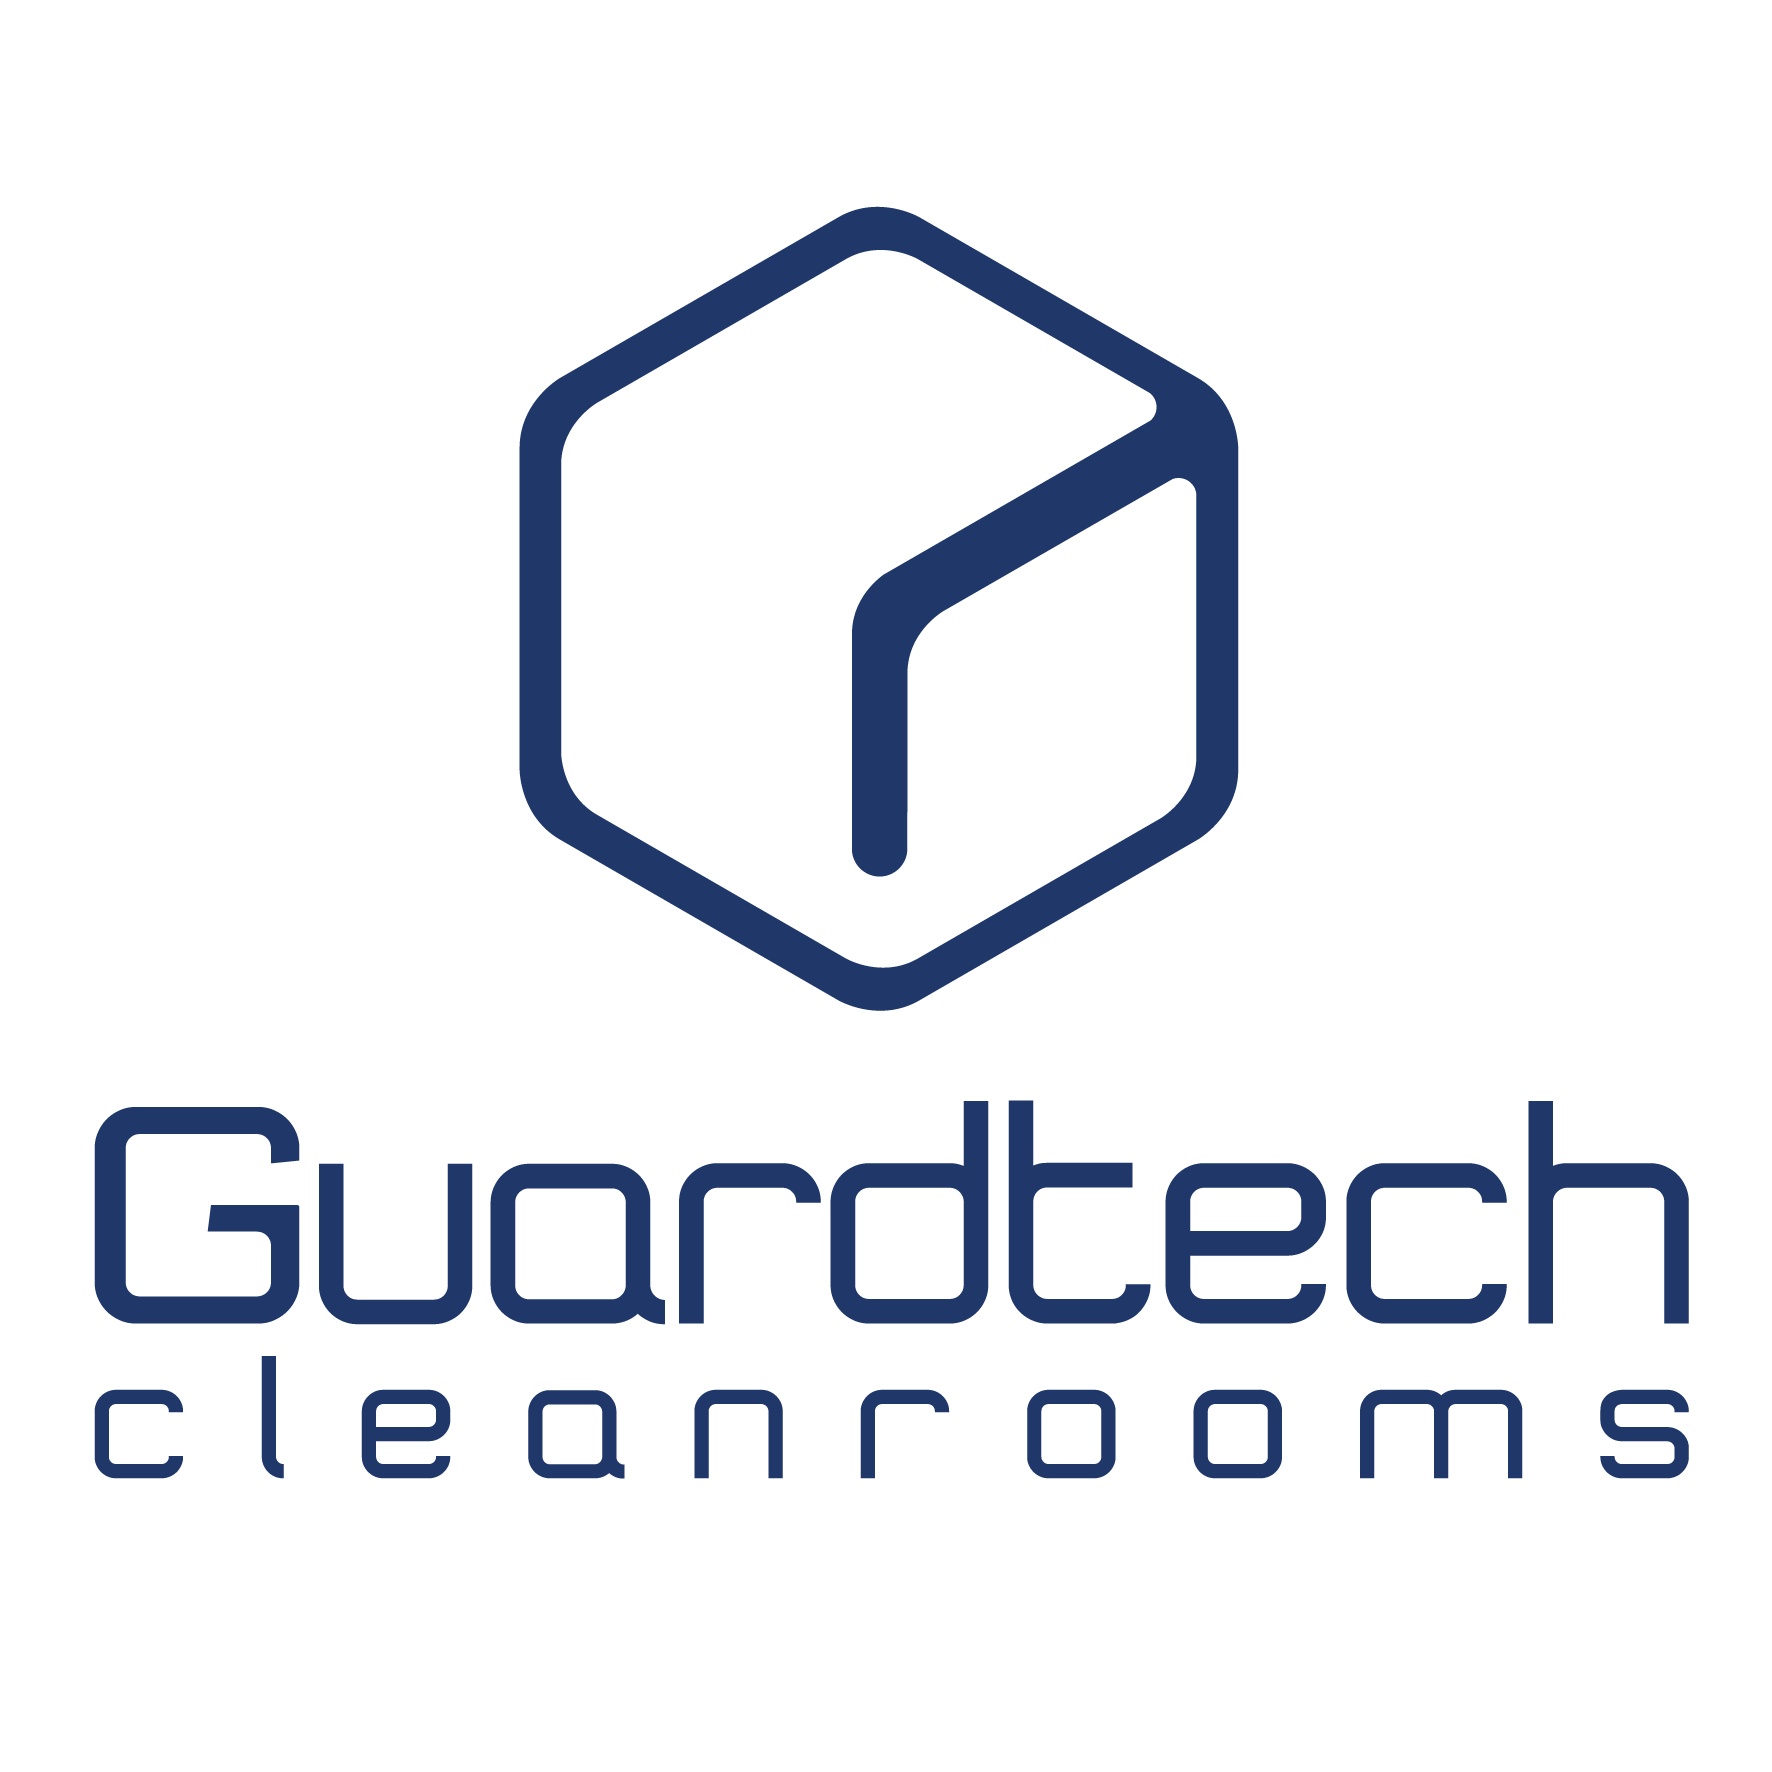 Guardtech Cleanrooms Ltd